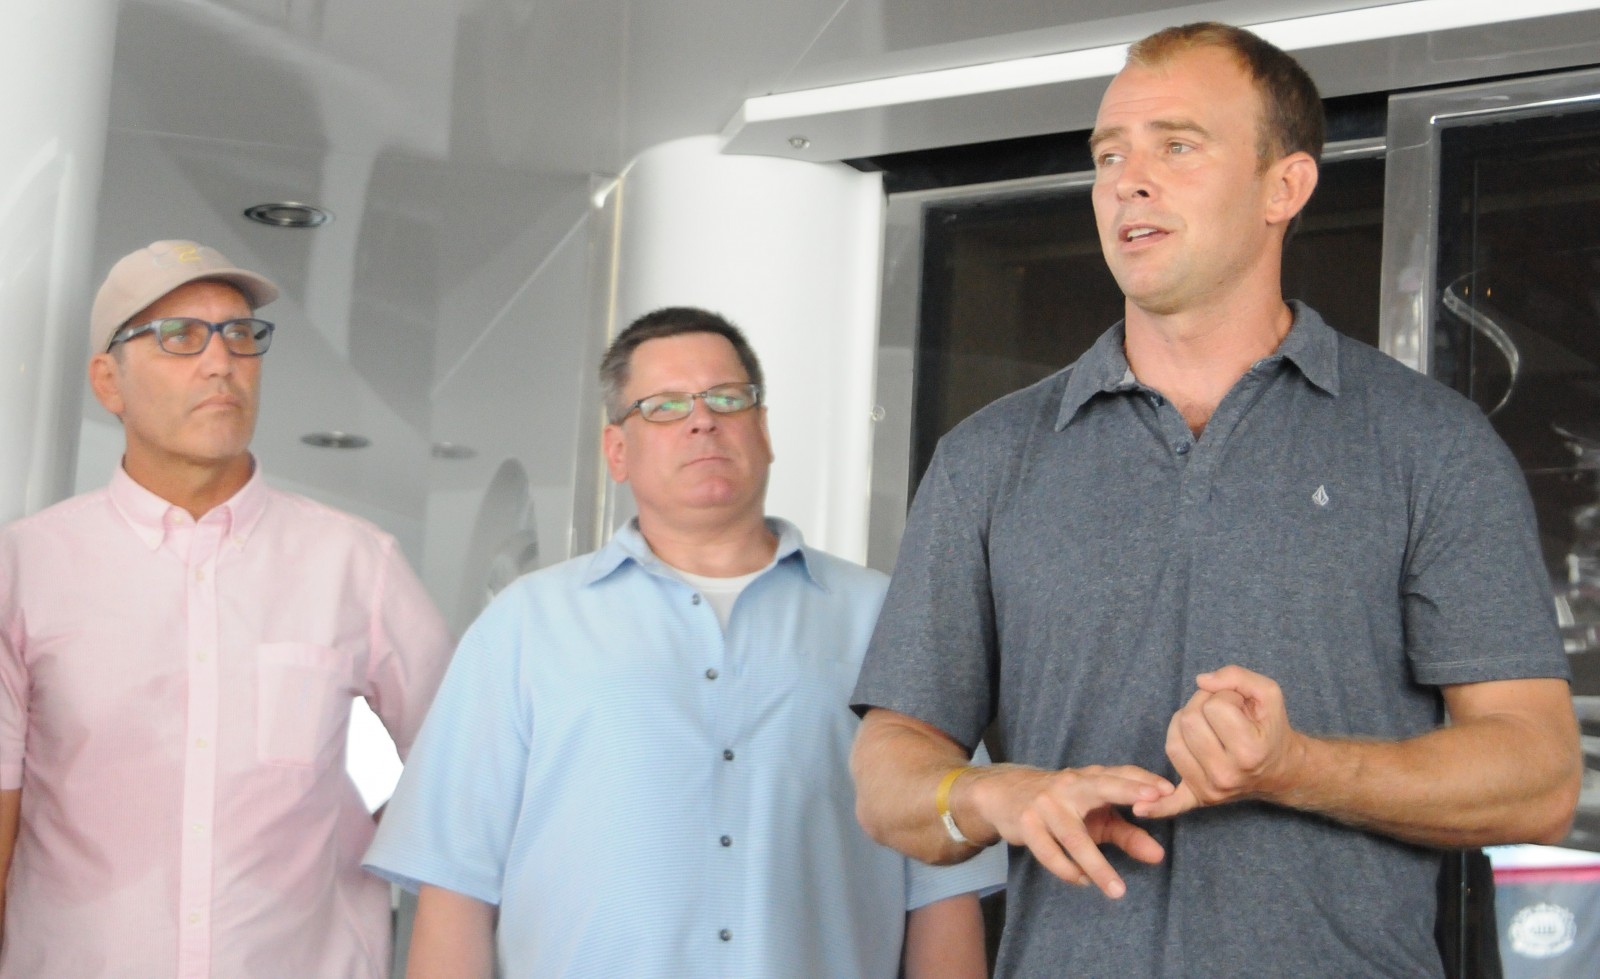 Former Navy Seal Grant Dawson, right, said he hopes to develop a program that will train more yacht crew on how to handle disaster emergencies during future relief efforts. Dawson is a leader with DART (Disaster Assistance Relief Team) and assists yacht crew as they engage in relief efforts such as the recent Vanuatu post Cyclone Pam in March 2015. From left are YachtAid Global Founder Mark Drewelow and LIFT Non-Profit Logistics Founder Michael Rettig who want to increase the list of superyachts that are willing to help out in emergency relief efforts as they happen.